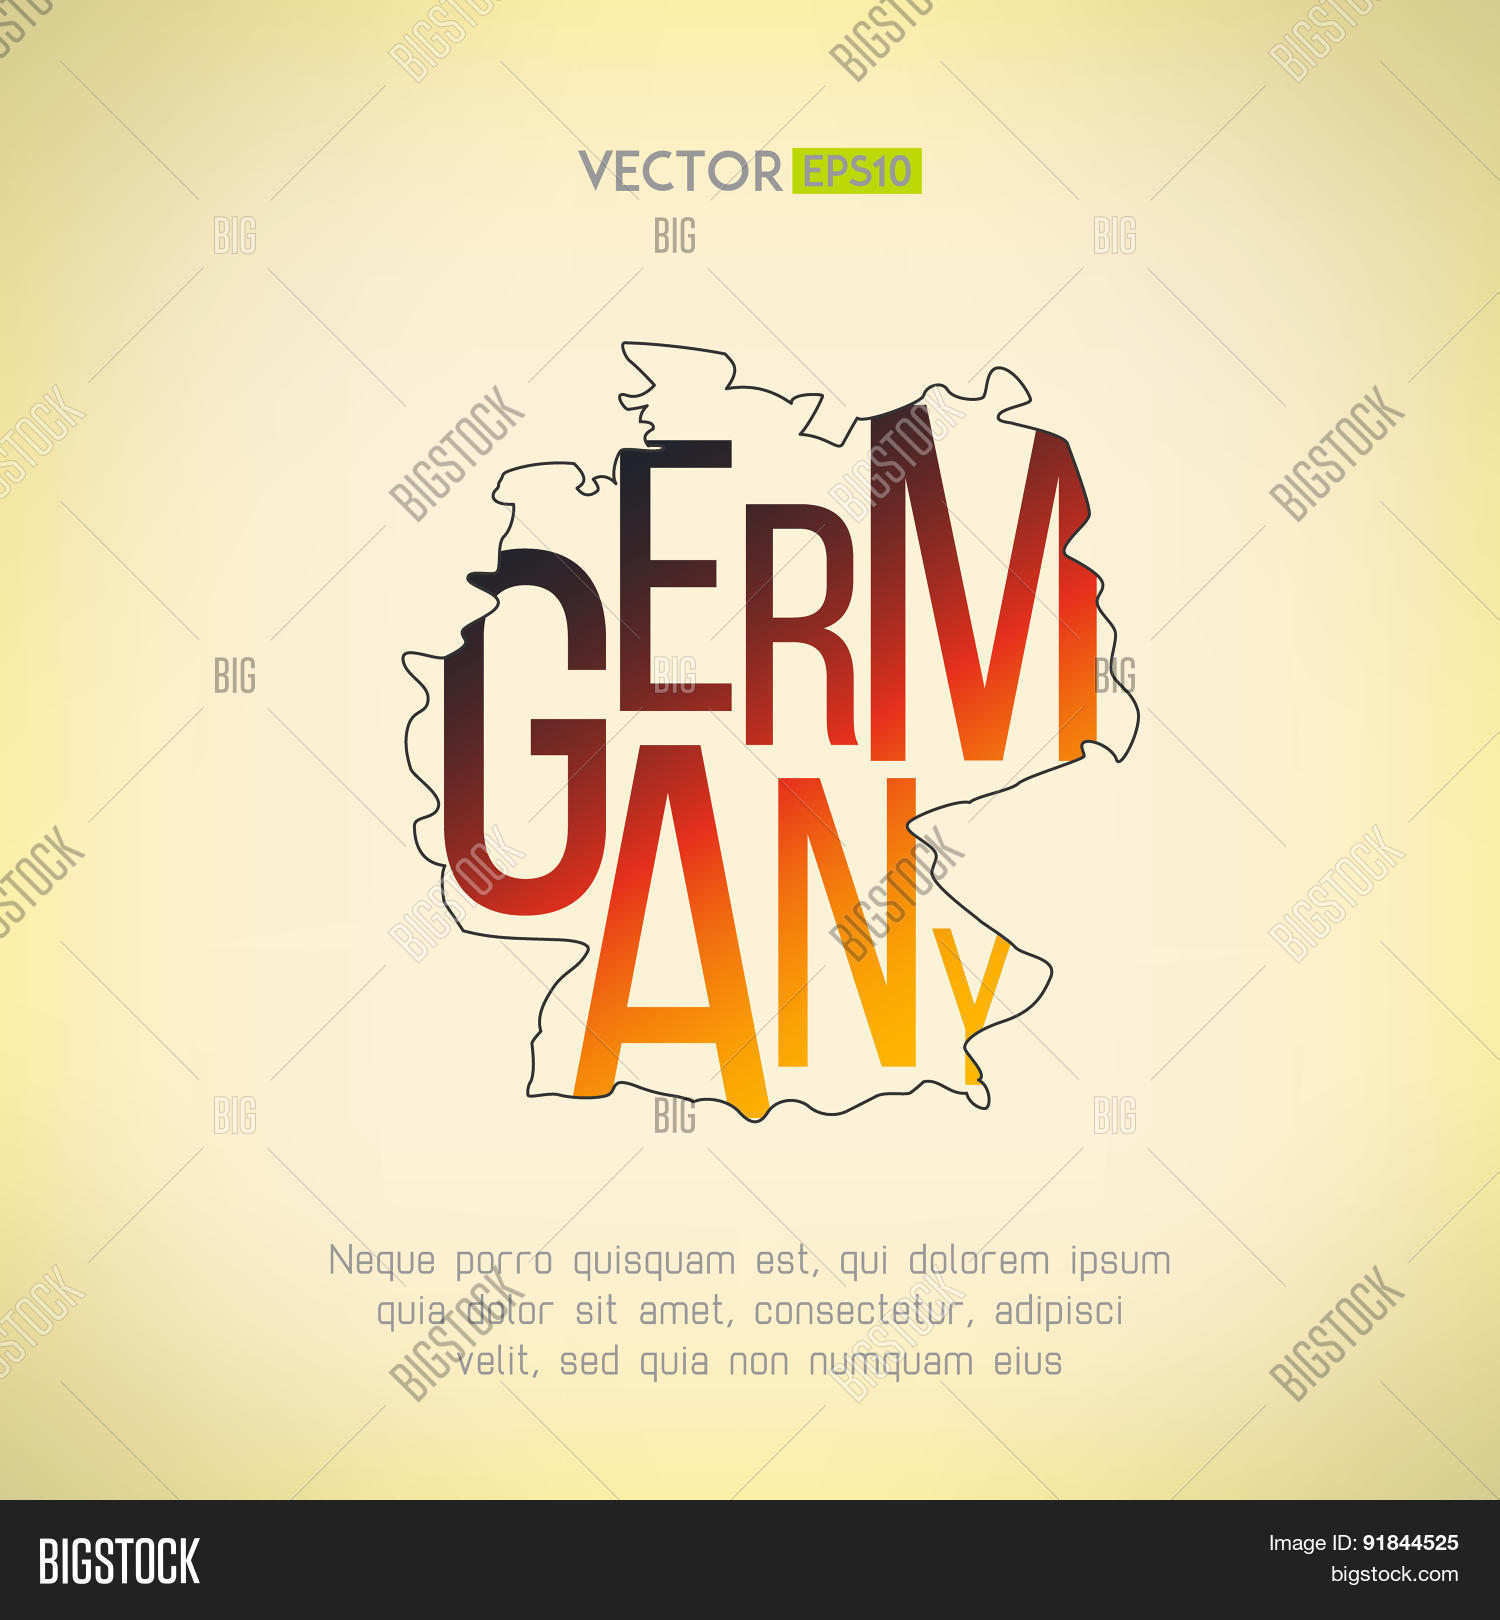 Vector Germany Map Vector & Photo (Free Trial) | Bigstock